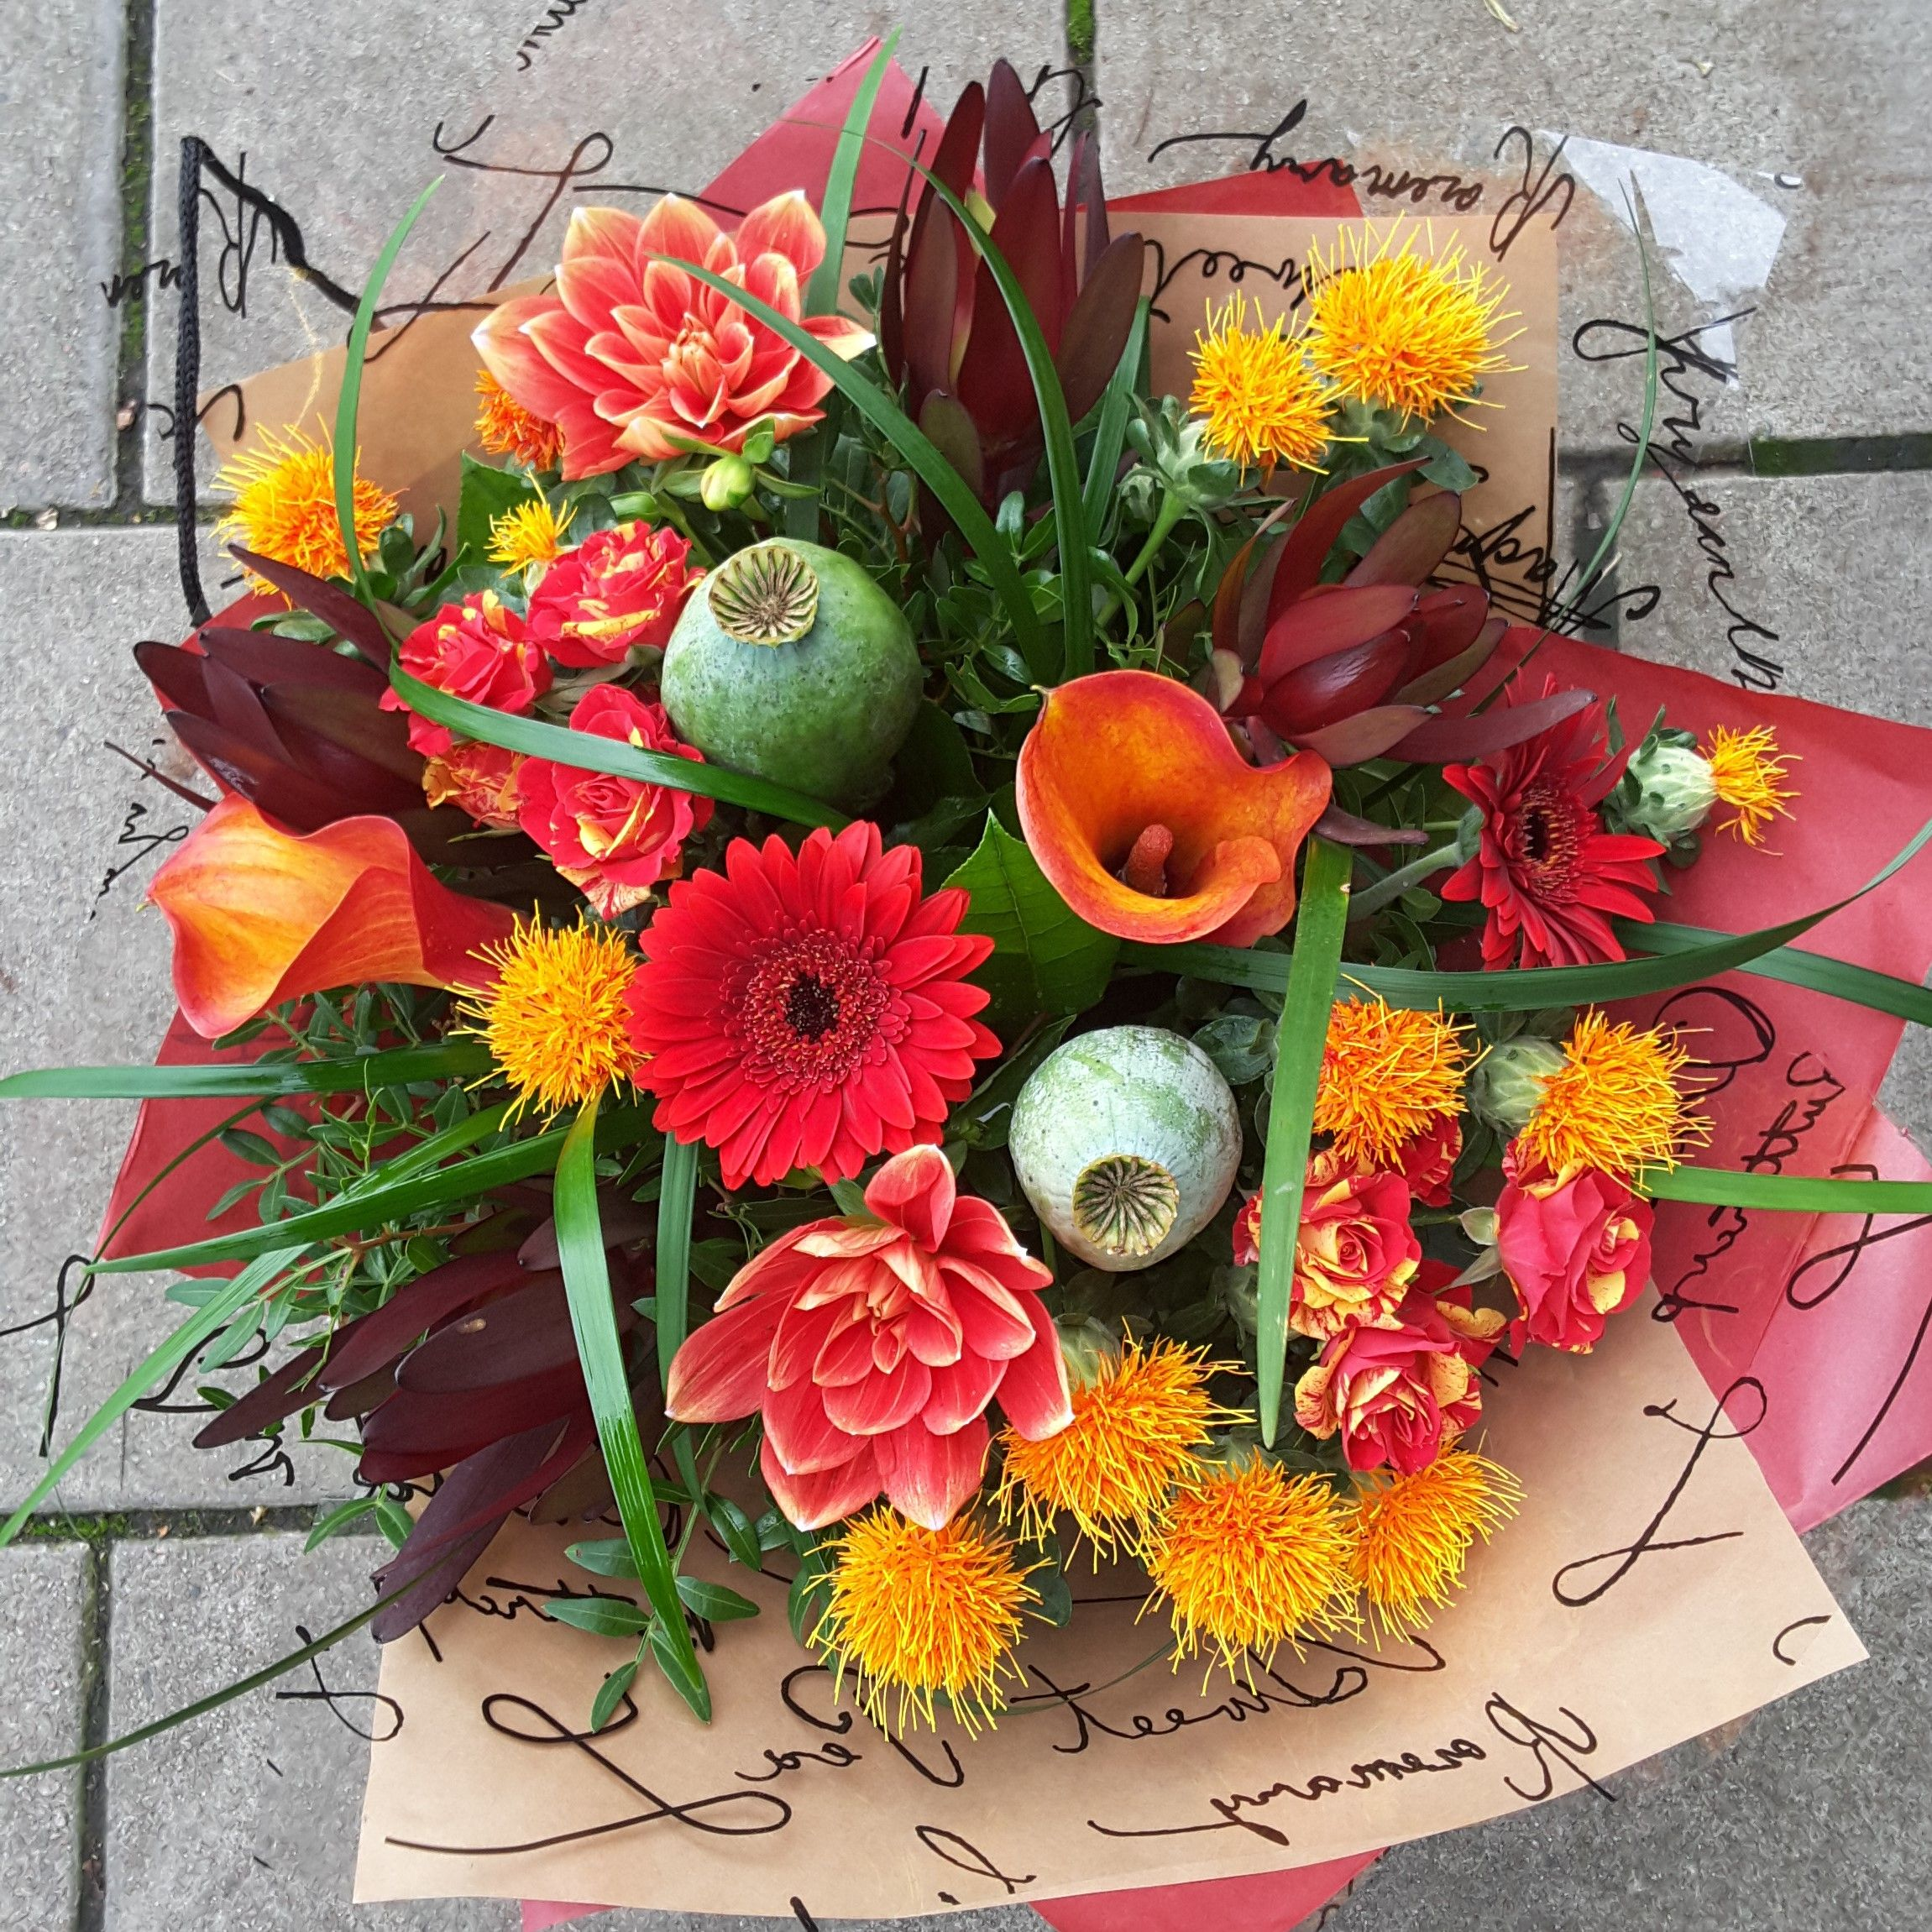 Autumn bouquet in bright oranges and reds. Florist